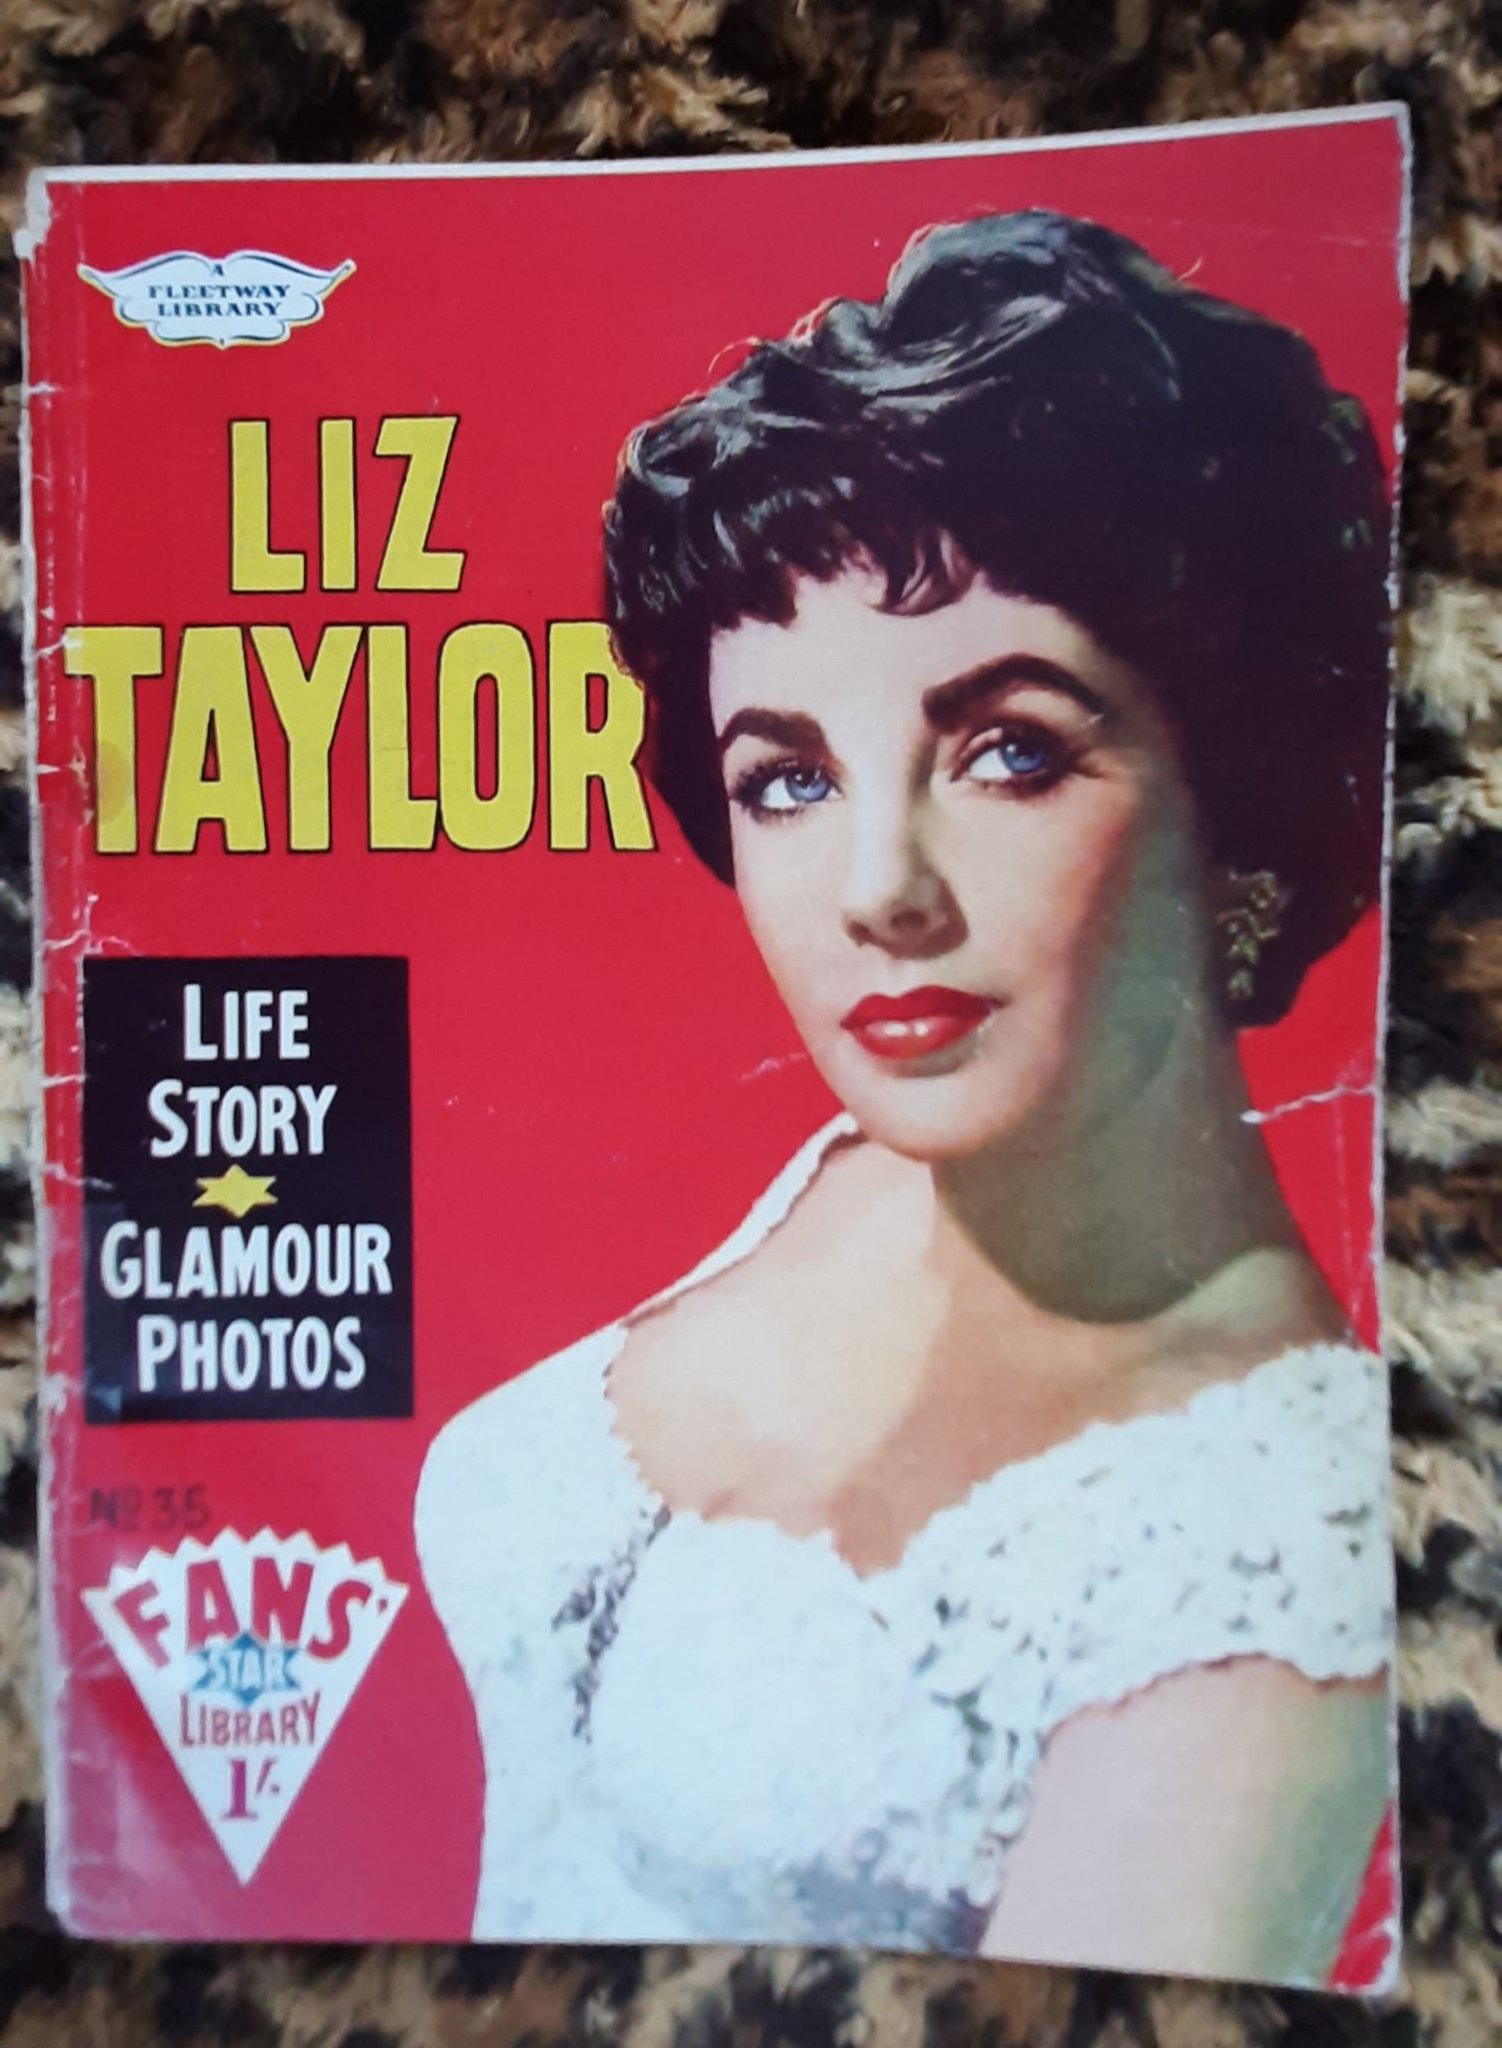 Elizabeth Taylor magazine cover. Fans star library. UK. 1960.